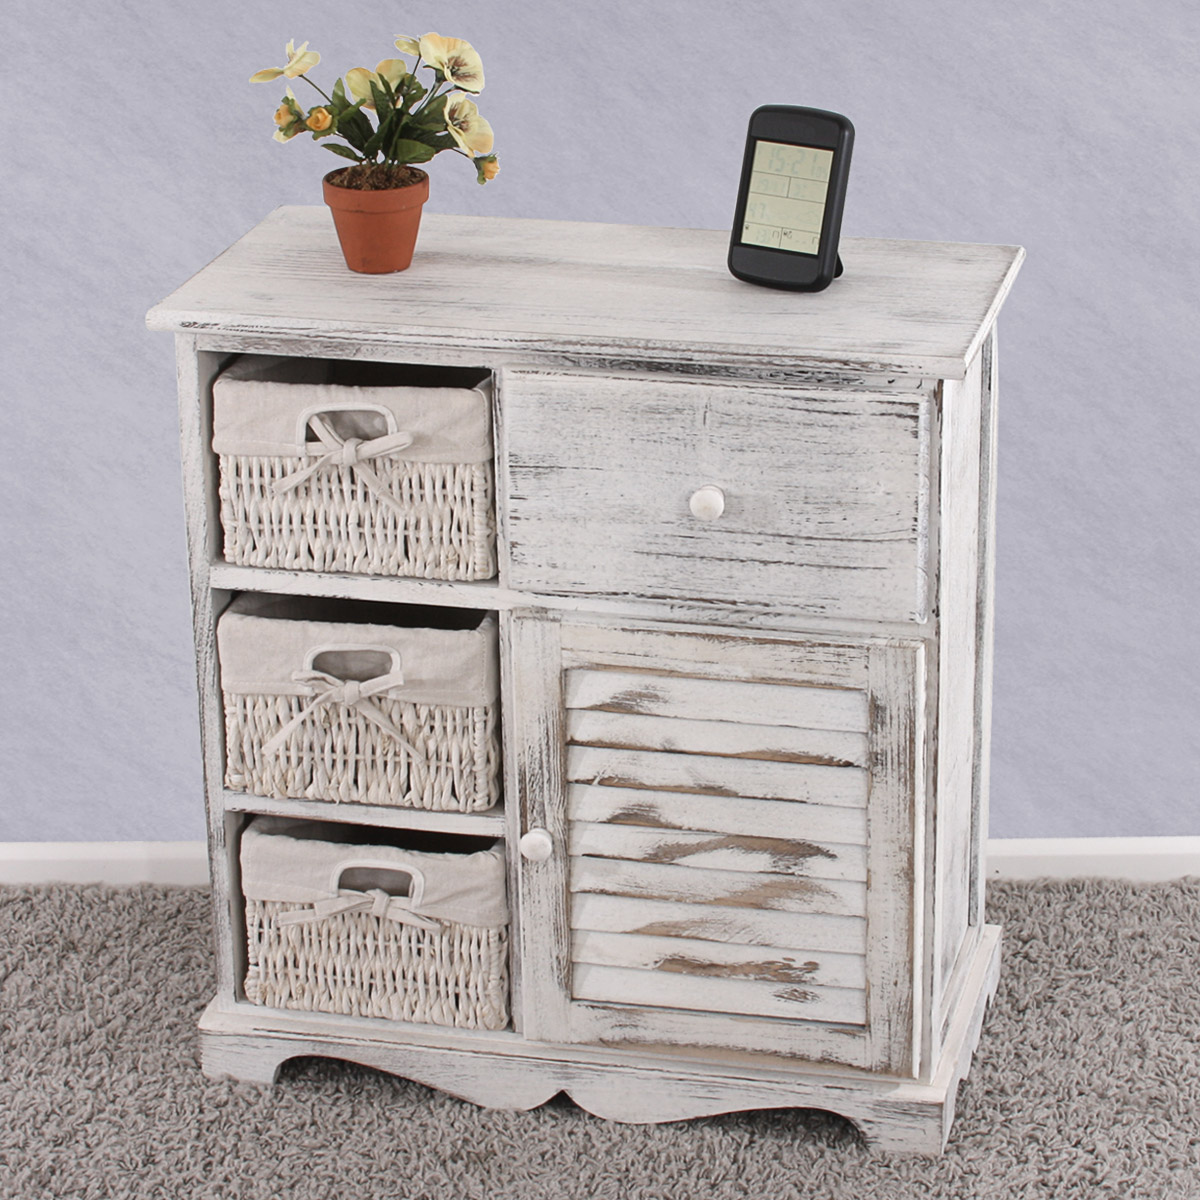 kommode schrank mit 3 k rben 63x60x30cm shabby look vintage wei ebay. Black Bedroom Furniture Sets. Home Design Ideas